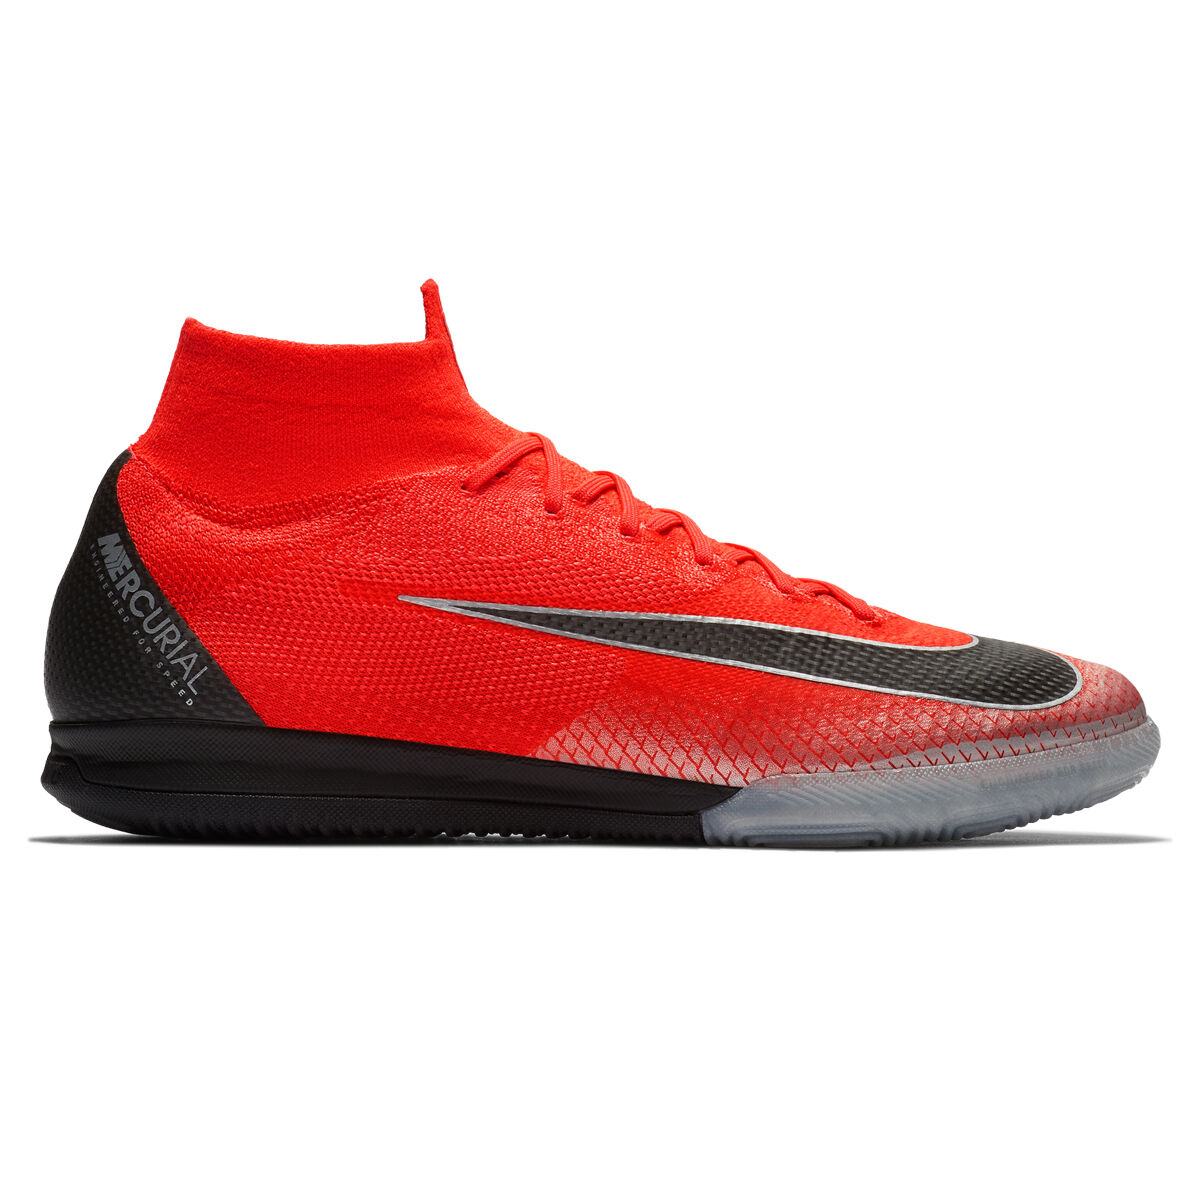 NEW NIKE MERCURIAL SUPERFLY CR7 LAVA BOOTS .